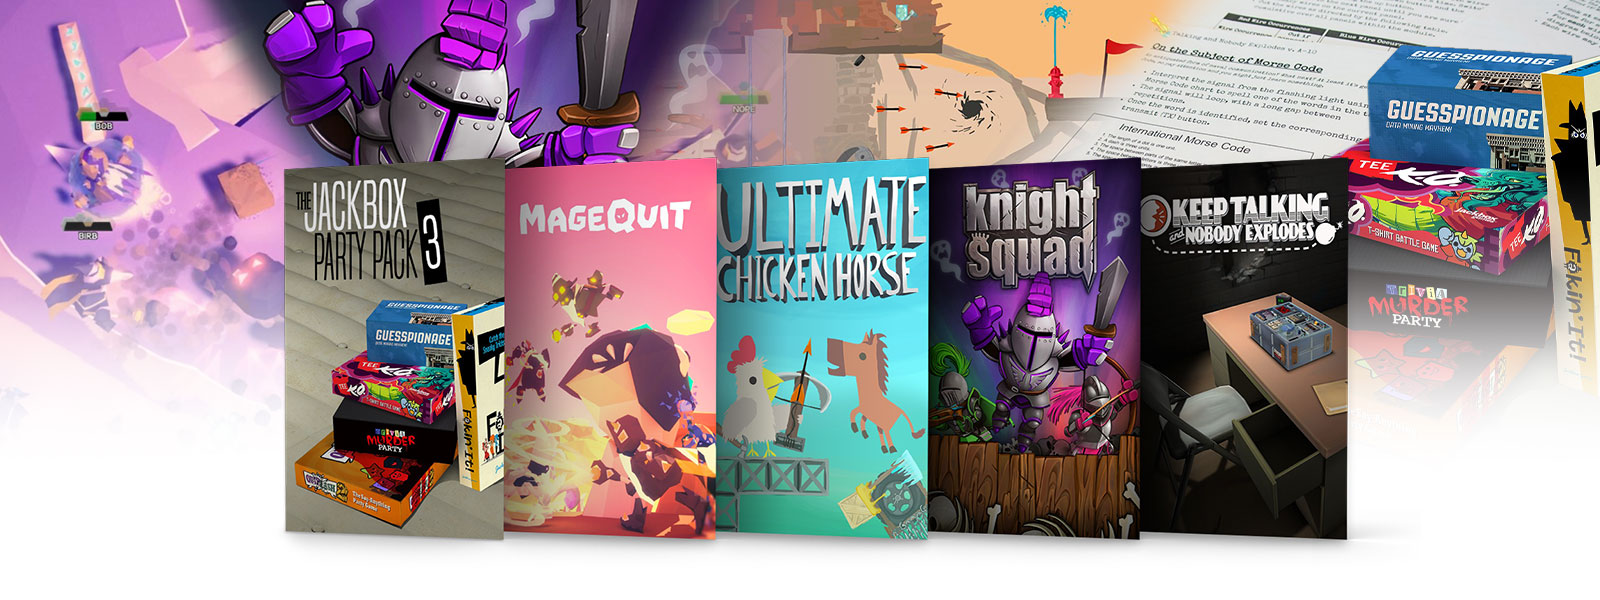 A collage of box art for ID at Xbox party games on sale. Jackbox Party Pack 3, Mage Quit, Ultimate Chicken Horse, Knight Squad, and Keep Talking and Nobody Explodes.